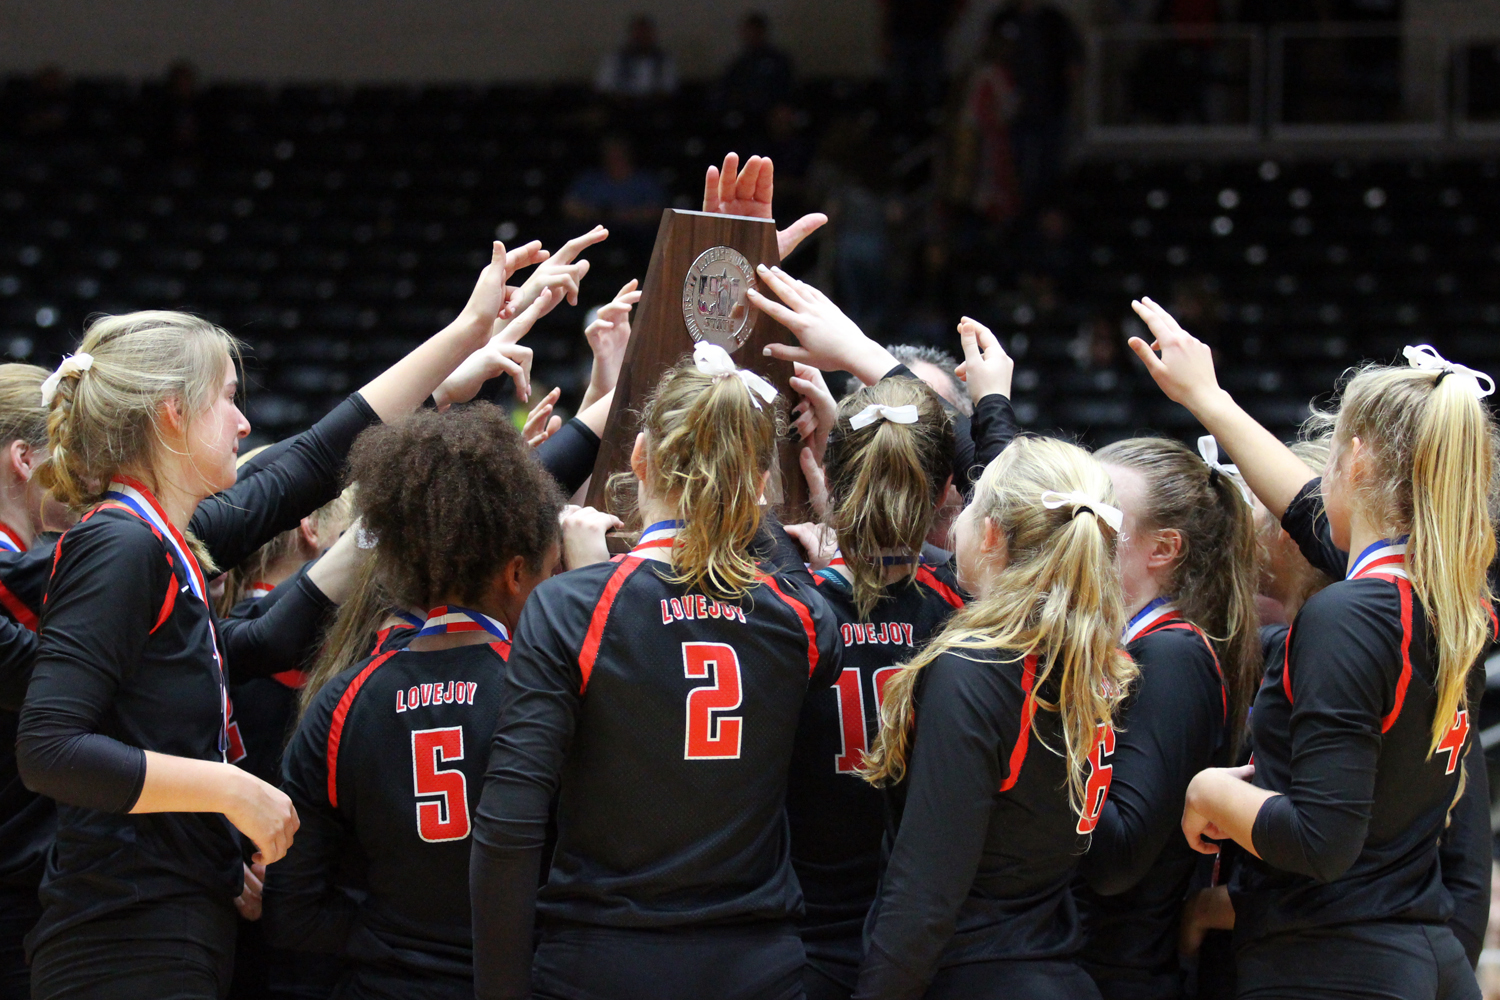 The Leopards come together to raise the state runner-up trophy after Saturday's championship match in Garland.